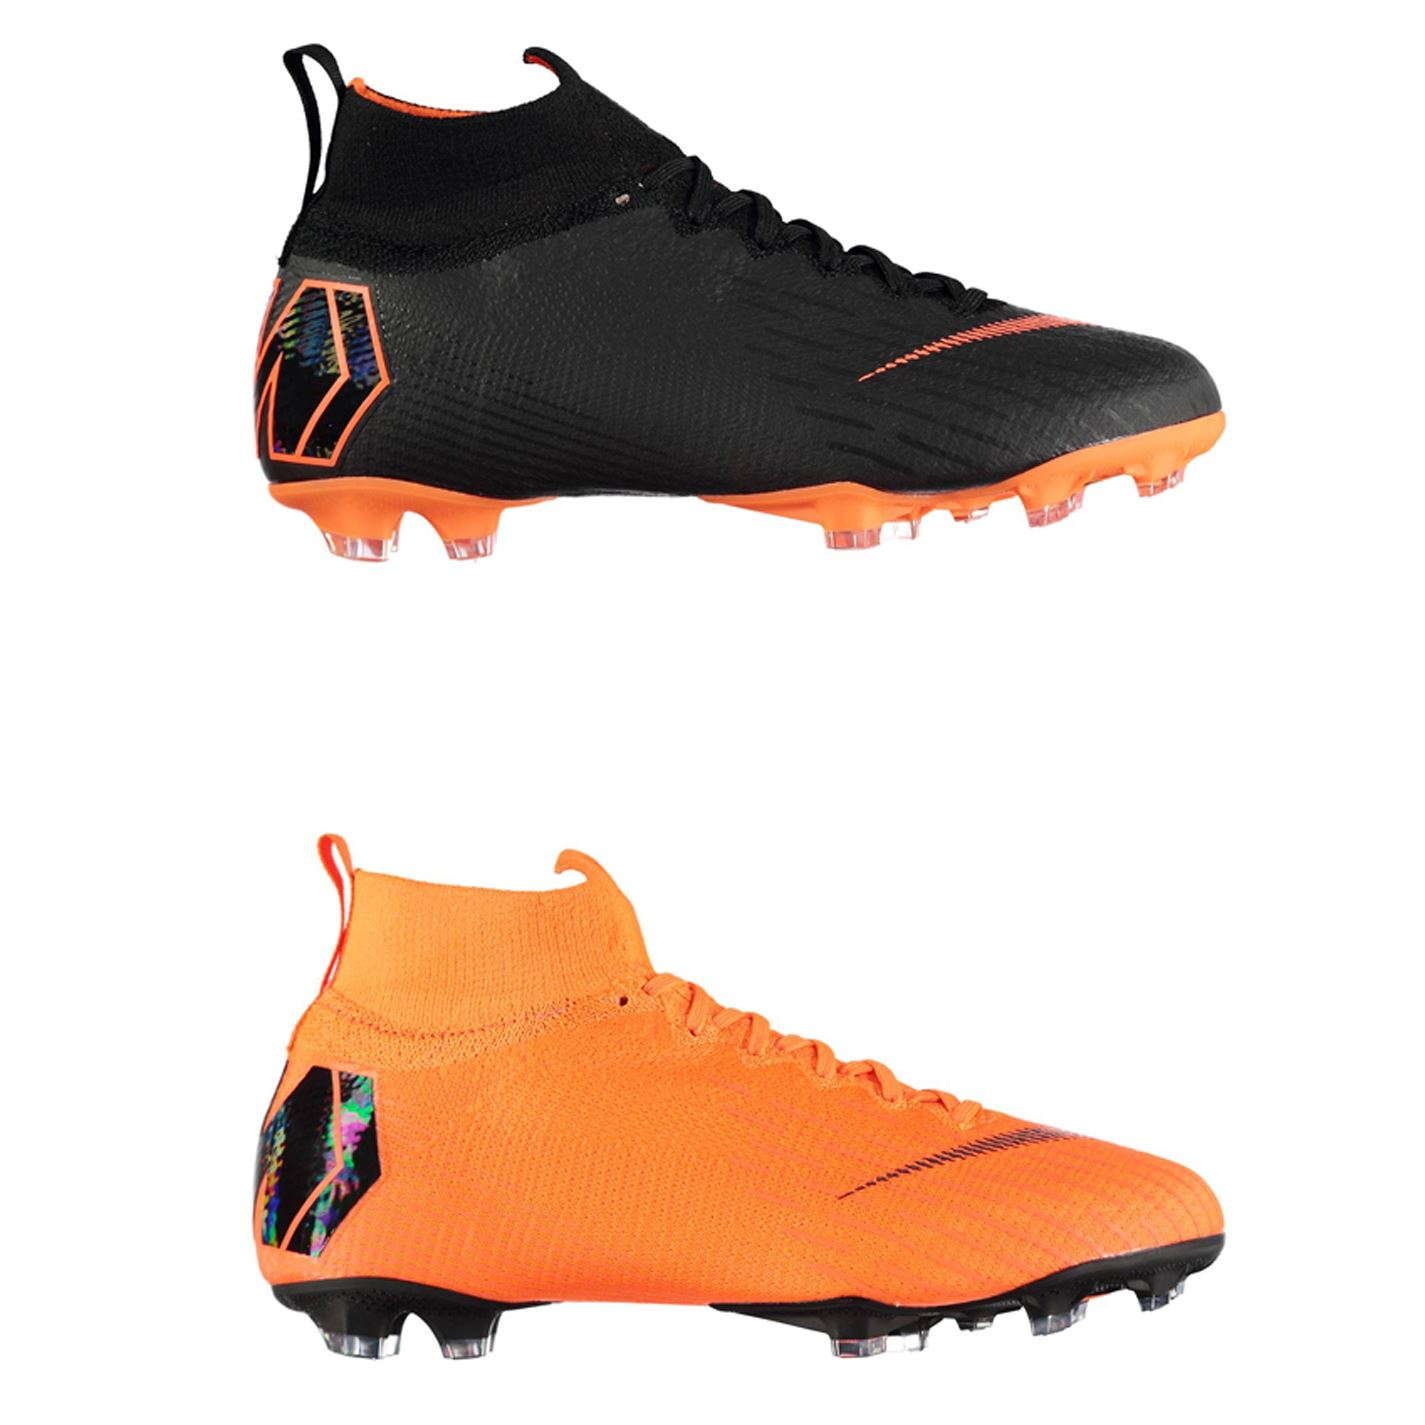 Dettagli su Nike Al Mercurio Superfly Elite Firm Ground Calcio Stivali Juniors Tacchetti